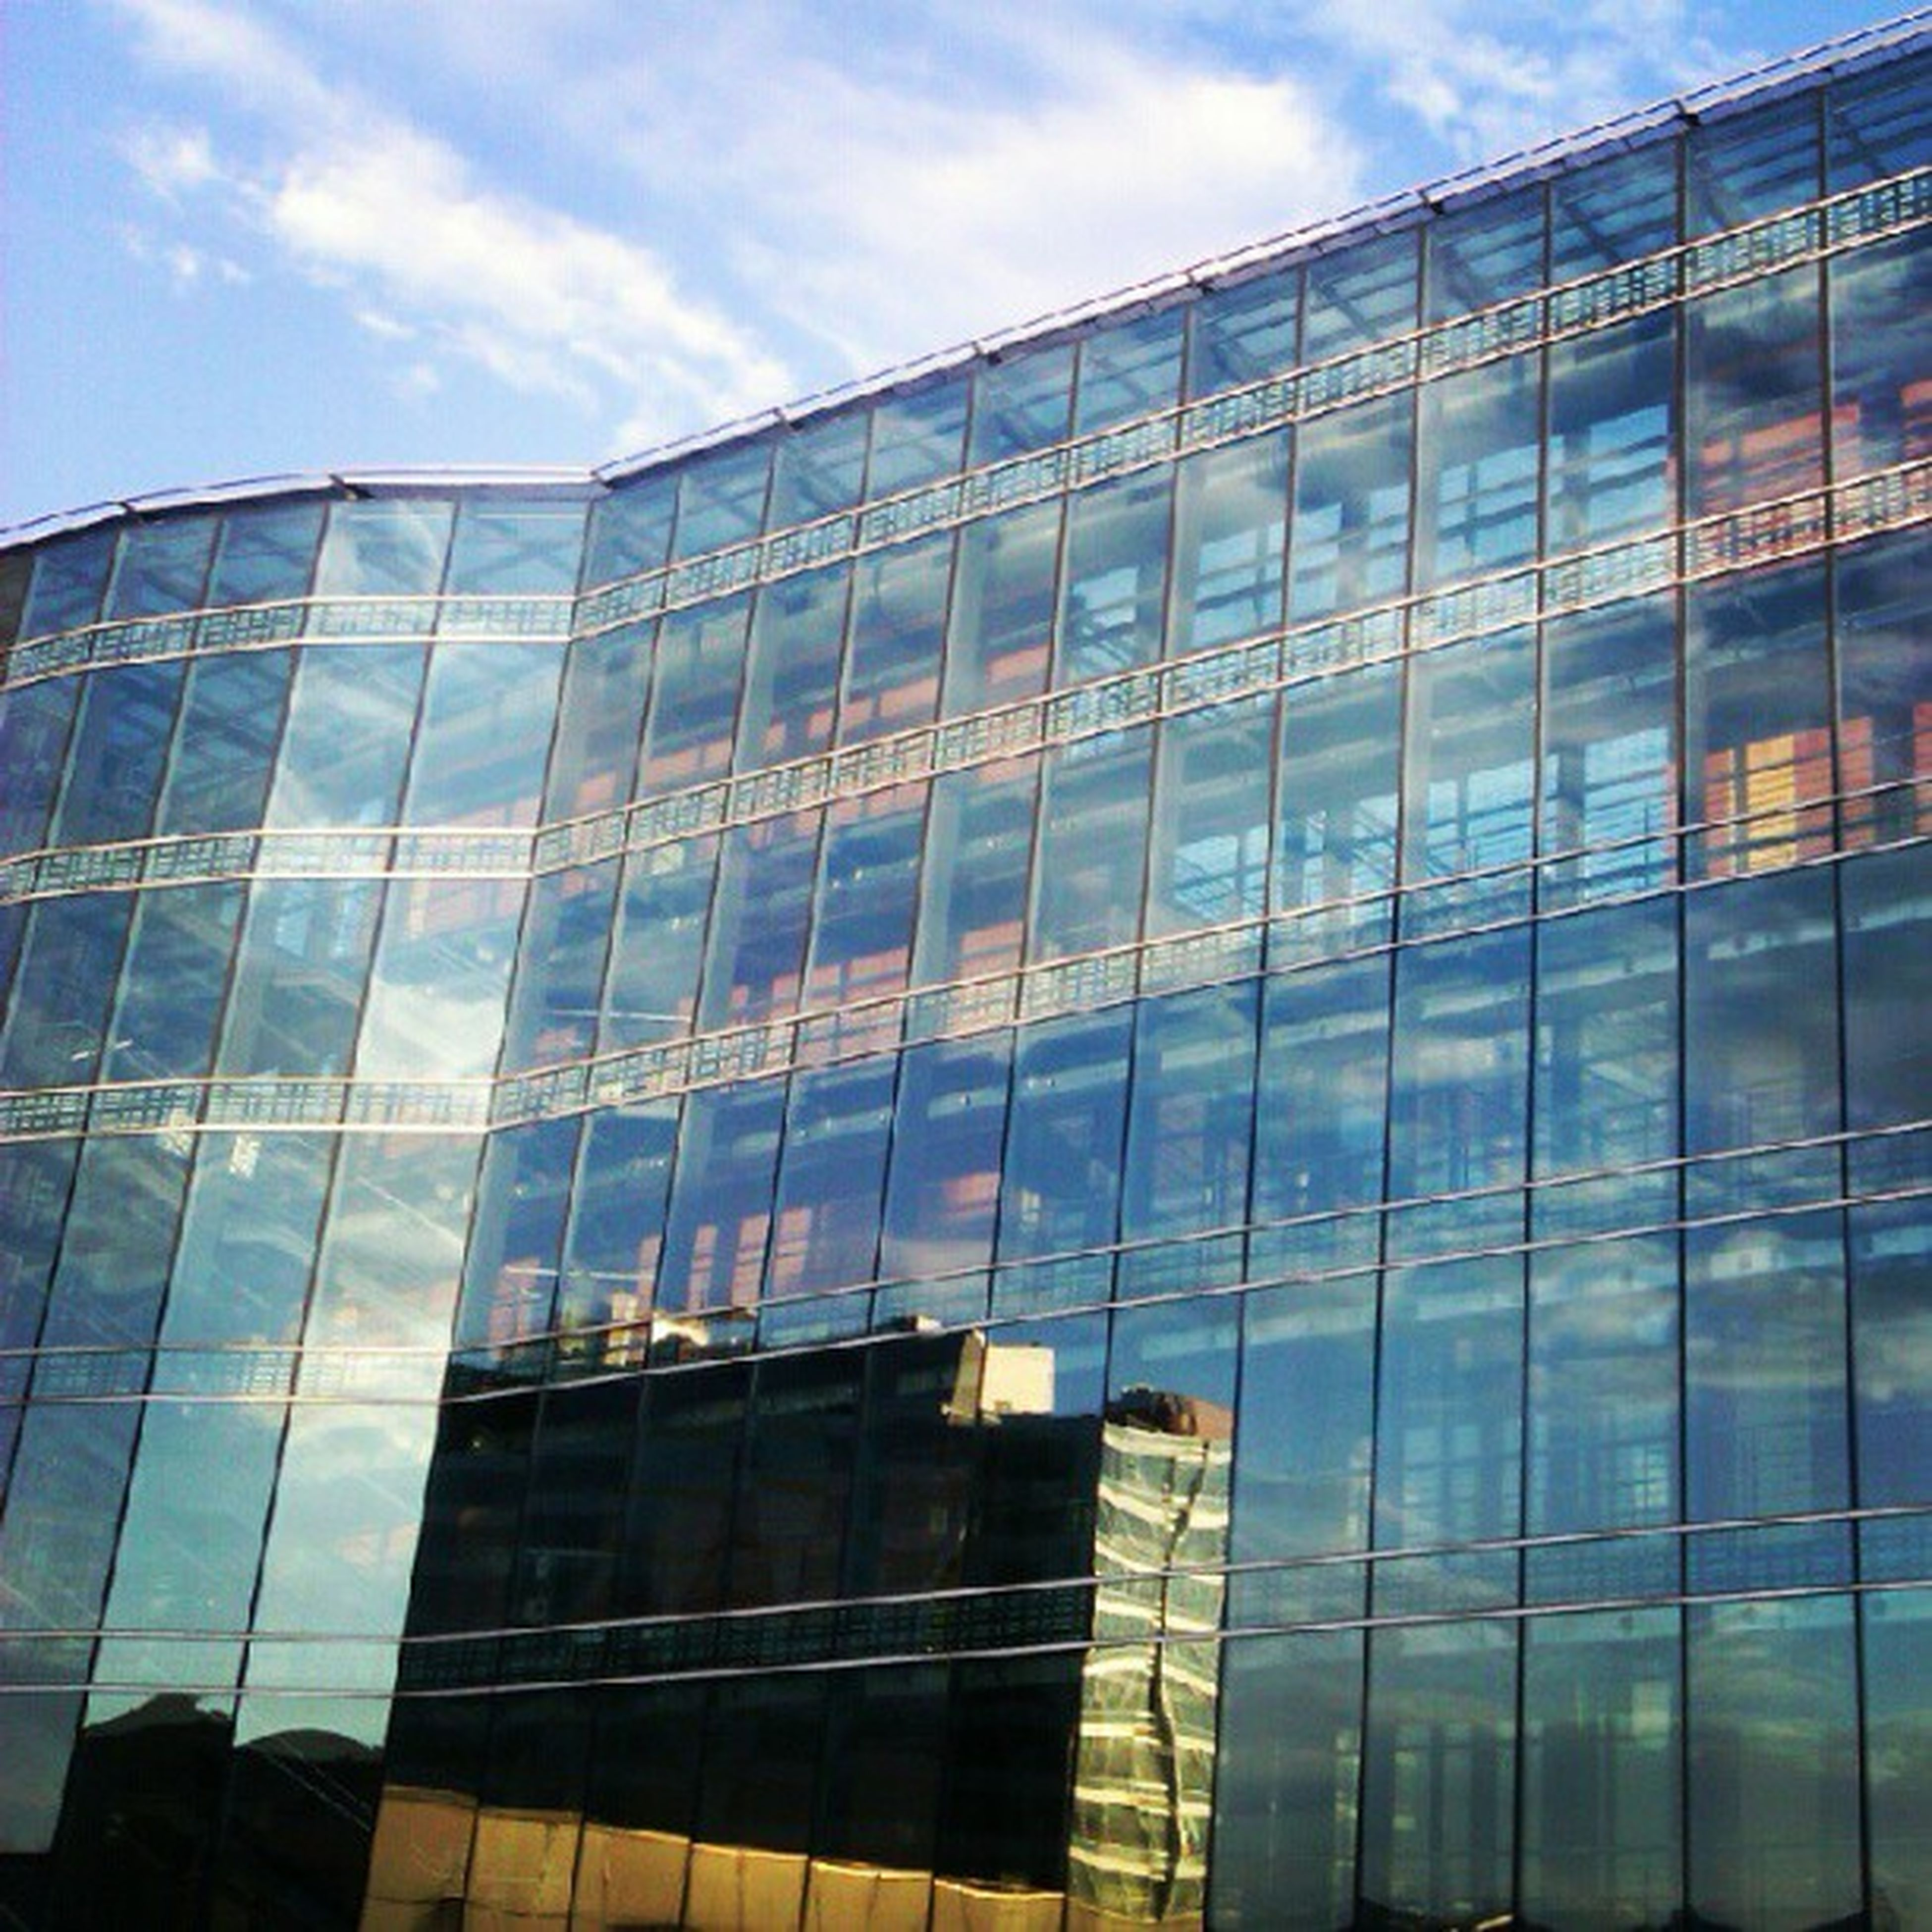 architecture, built structure, building exterior, low angle view, modern, glass - material, reflection, office building, sky, city, building, skyscraper, cloud - sky, window, tall - high, glass, tower, cloud, day, no people